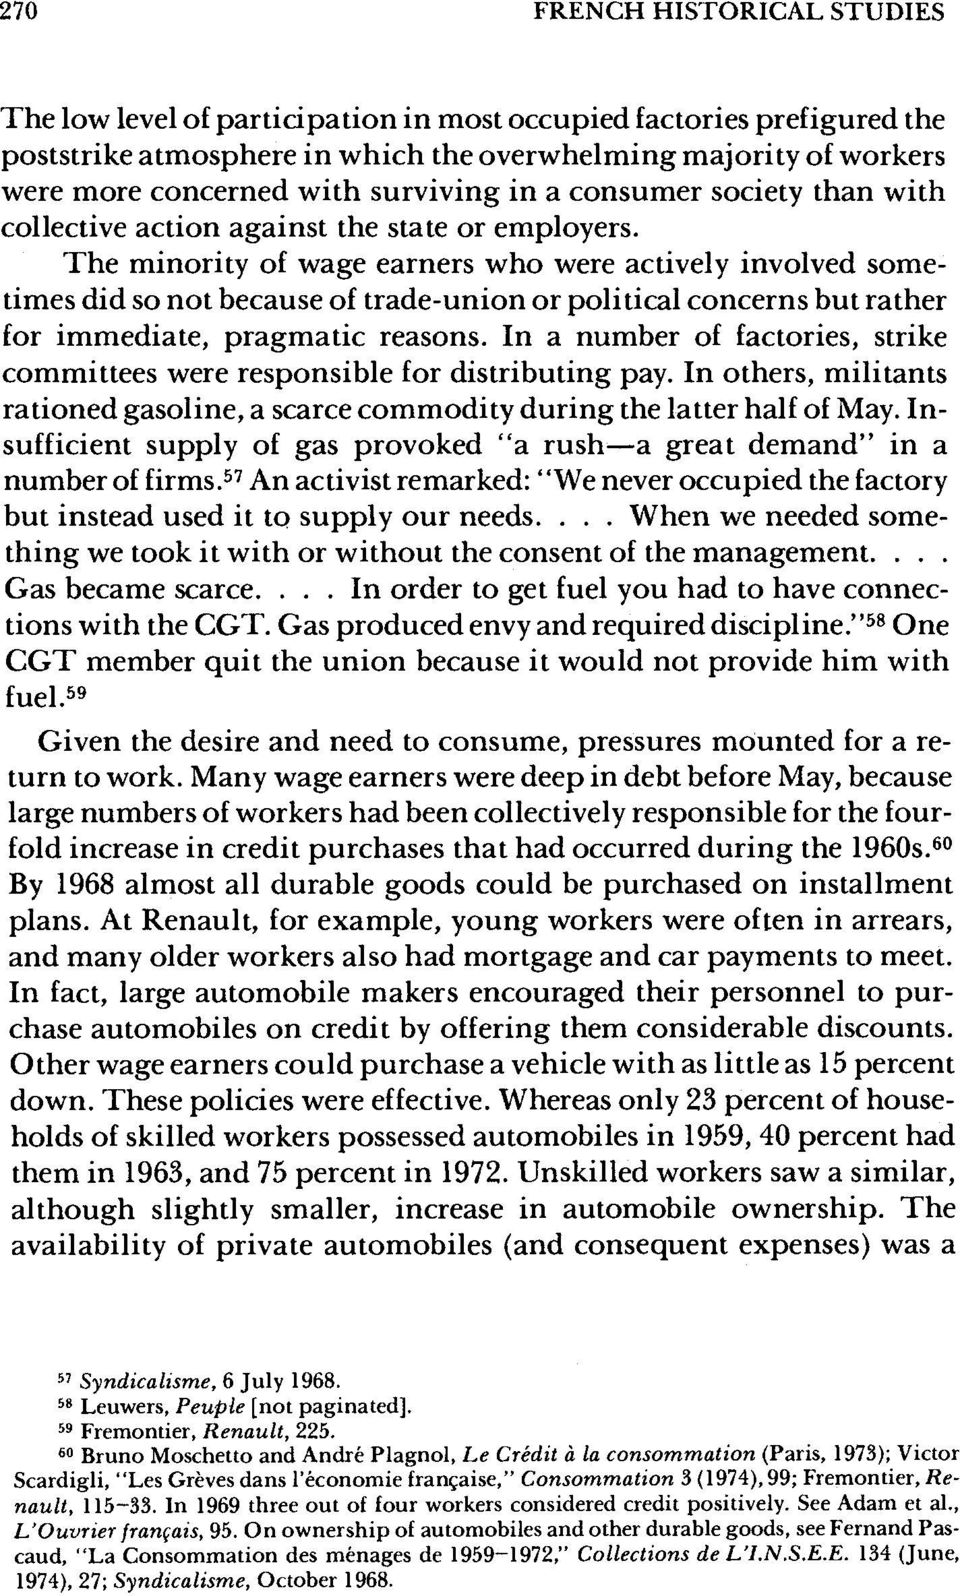 The minority of wage earners who were actively involved sometimes did so not because of trade-union or political concerns but rather for immediate, pragmatic reasons.